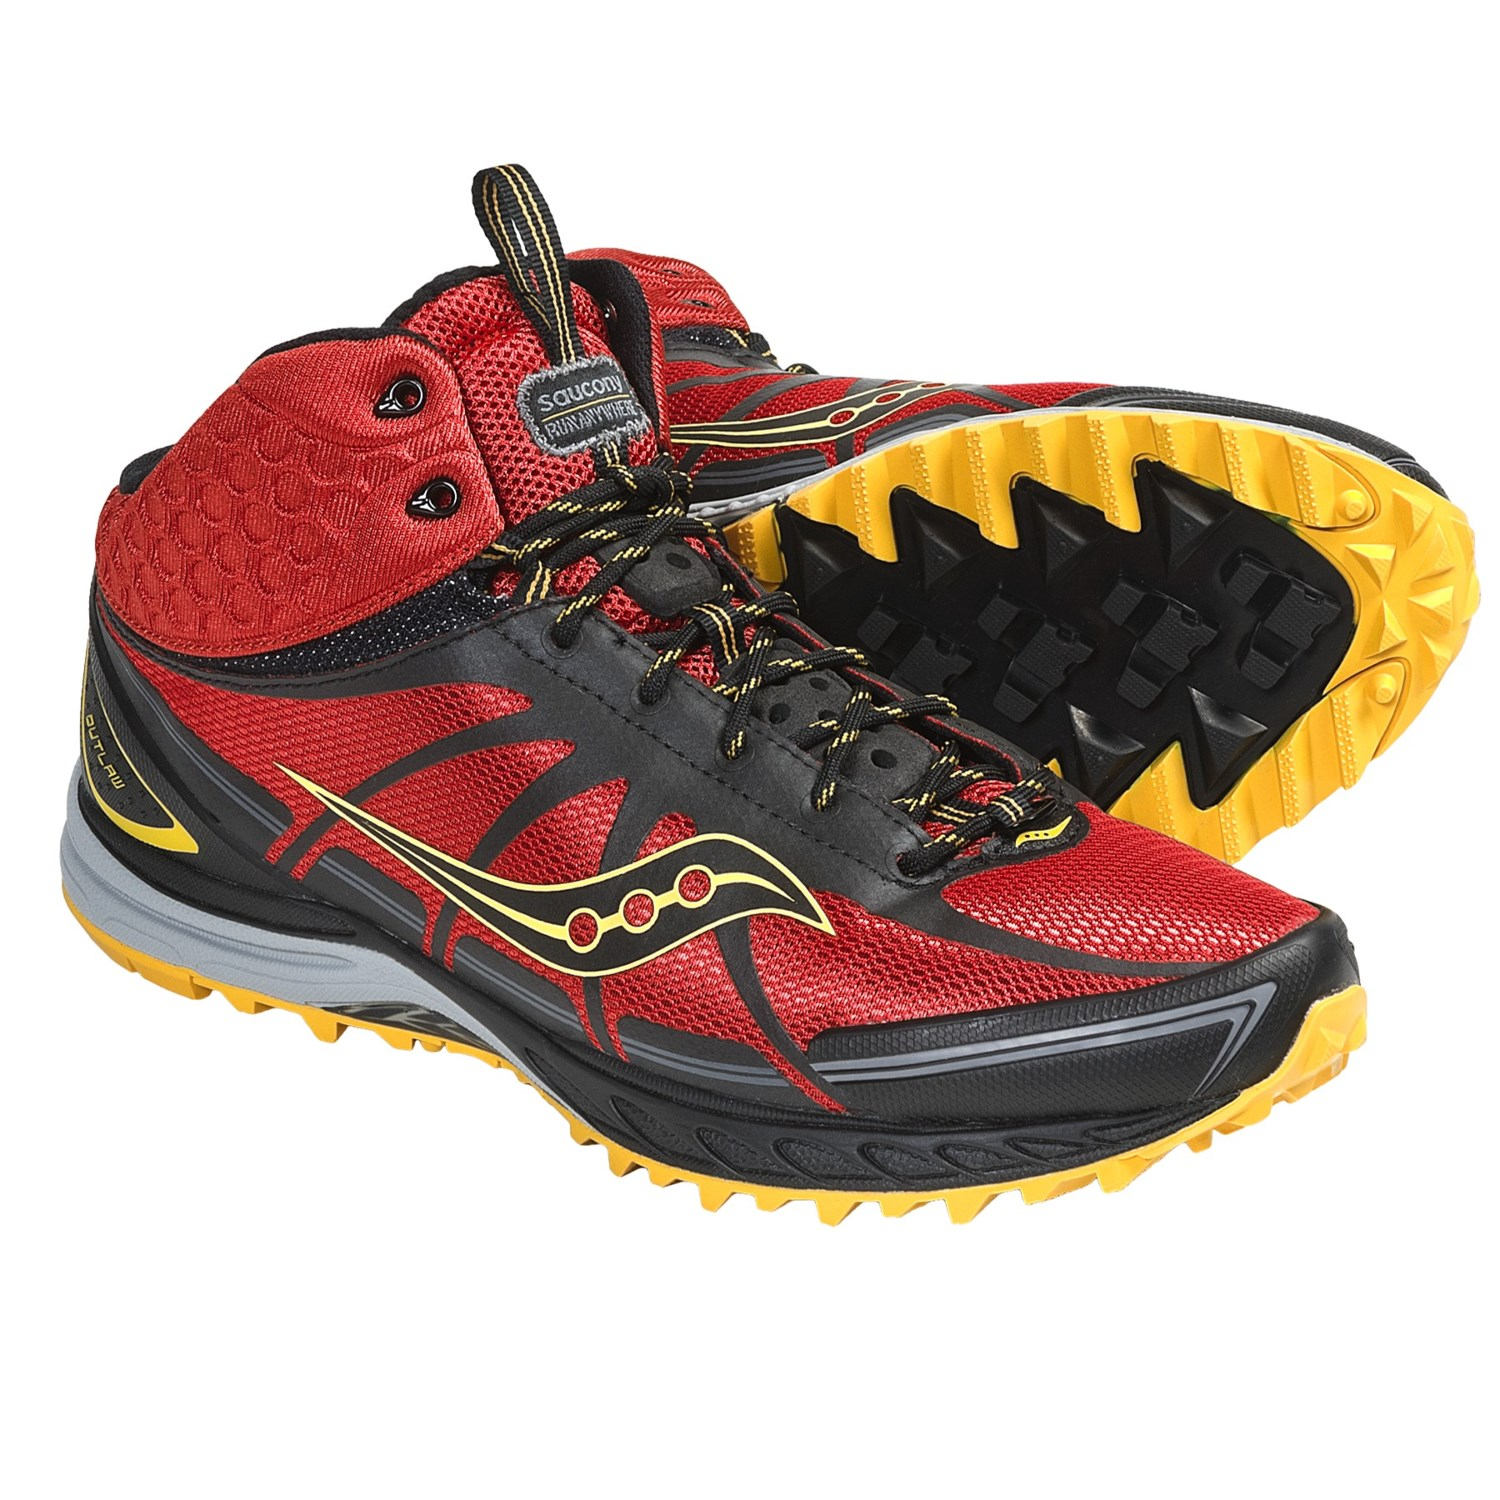 Saucony Running Shoes Reviews